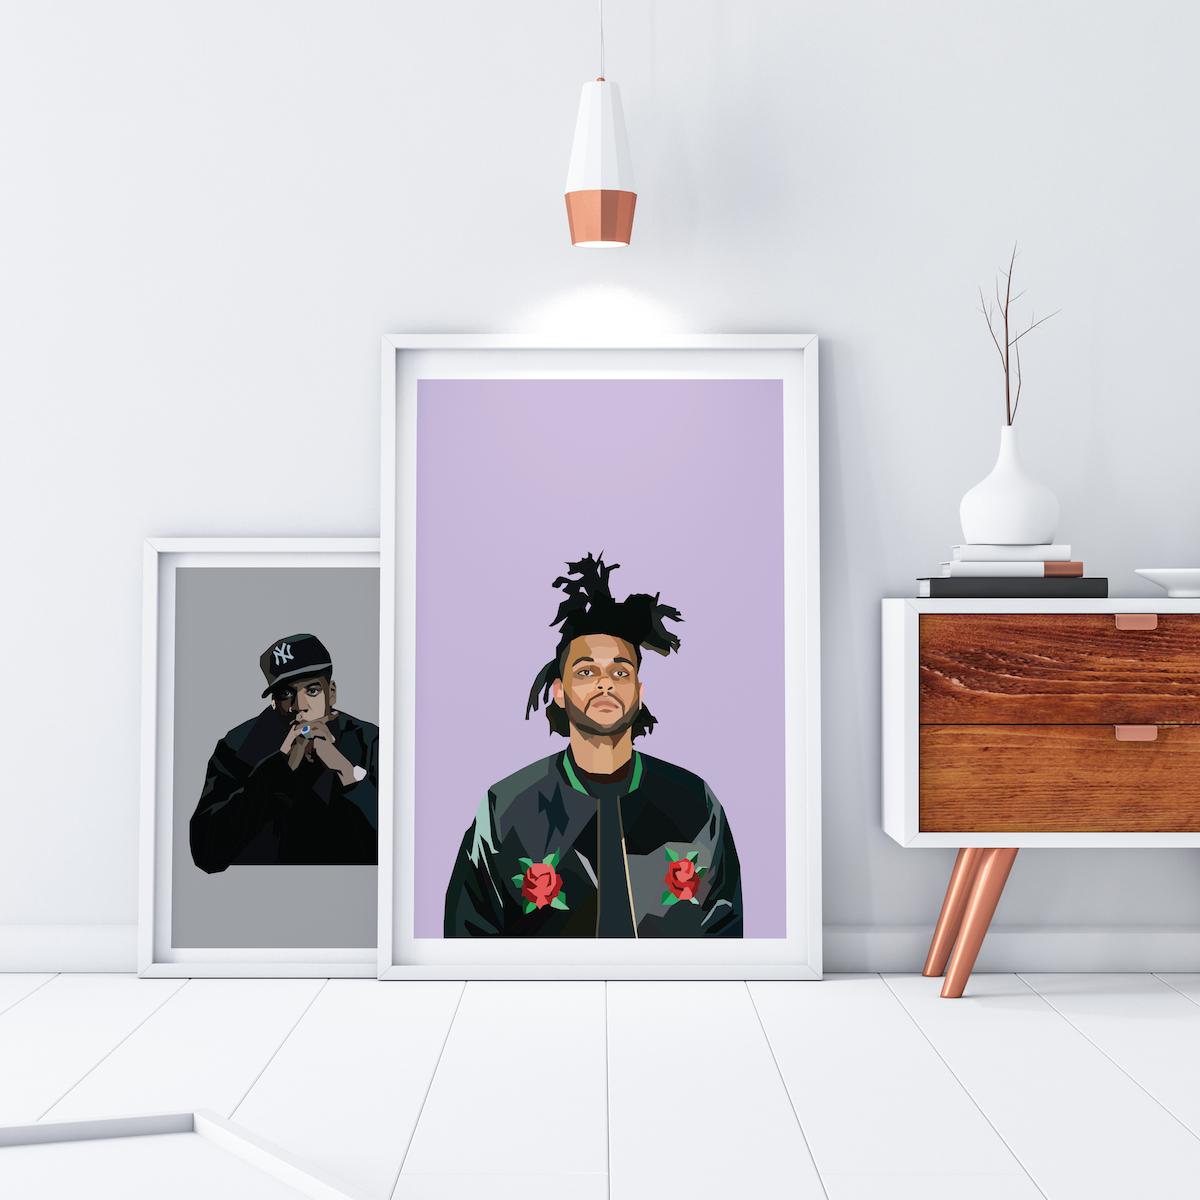 Assymetrical artwork Jay Z and the Weeknd